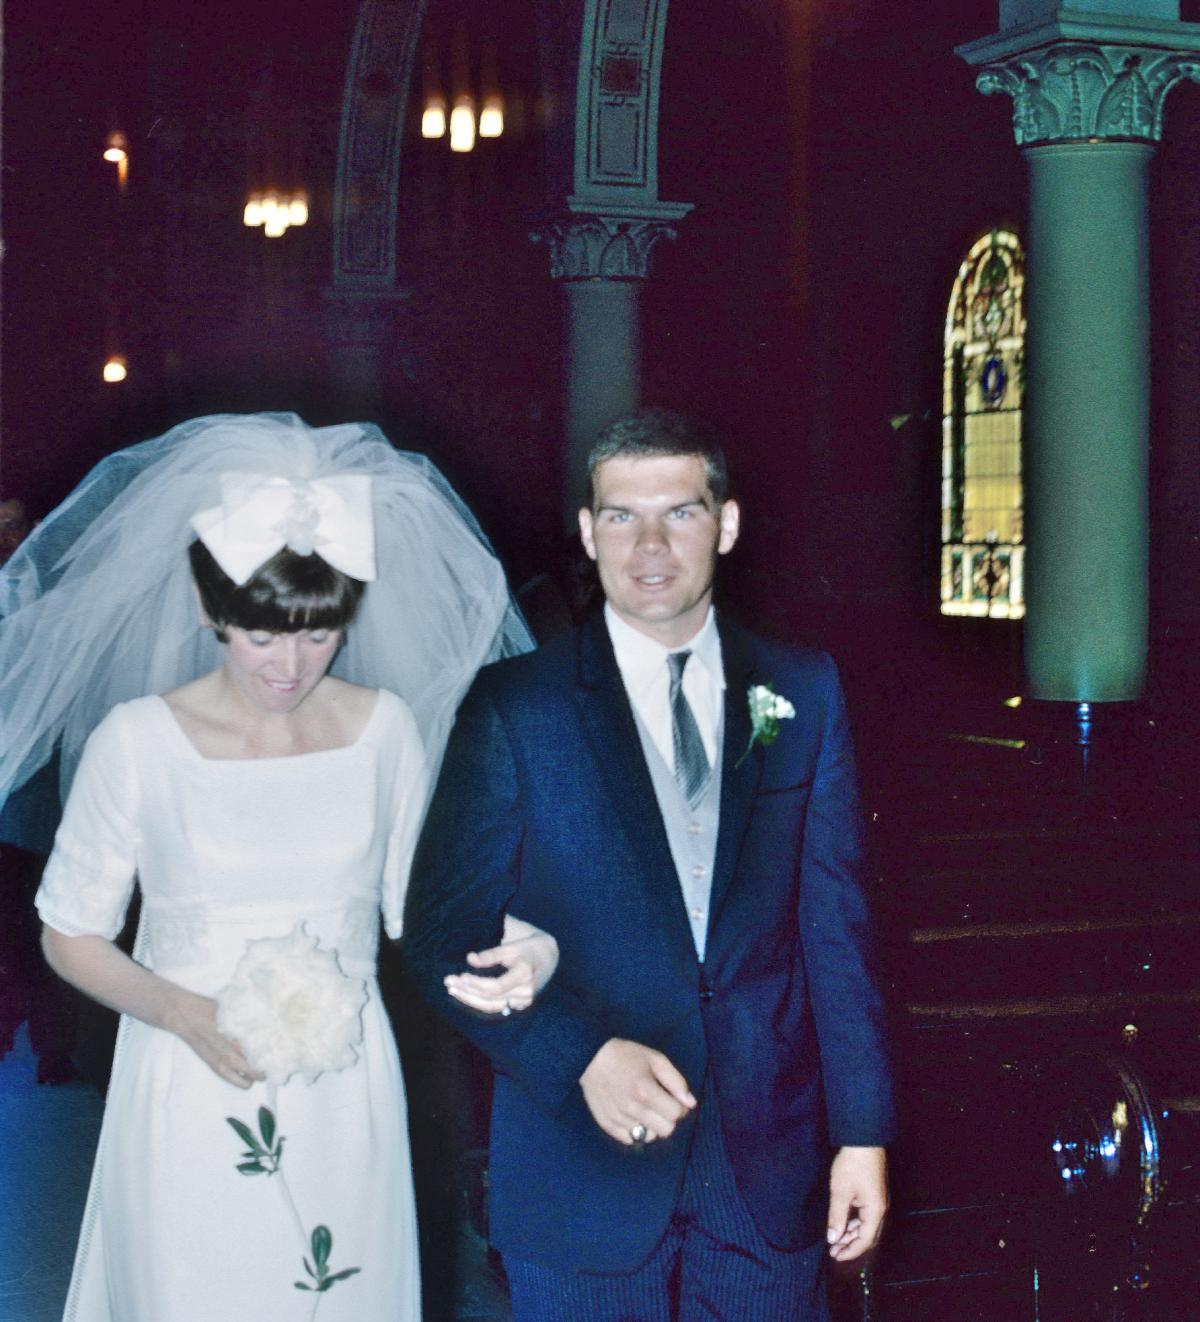 Elaine Zimmer Davis and Jerry Zimmer were married in June, 1966.